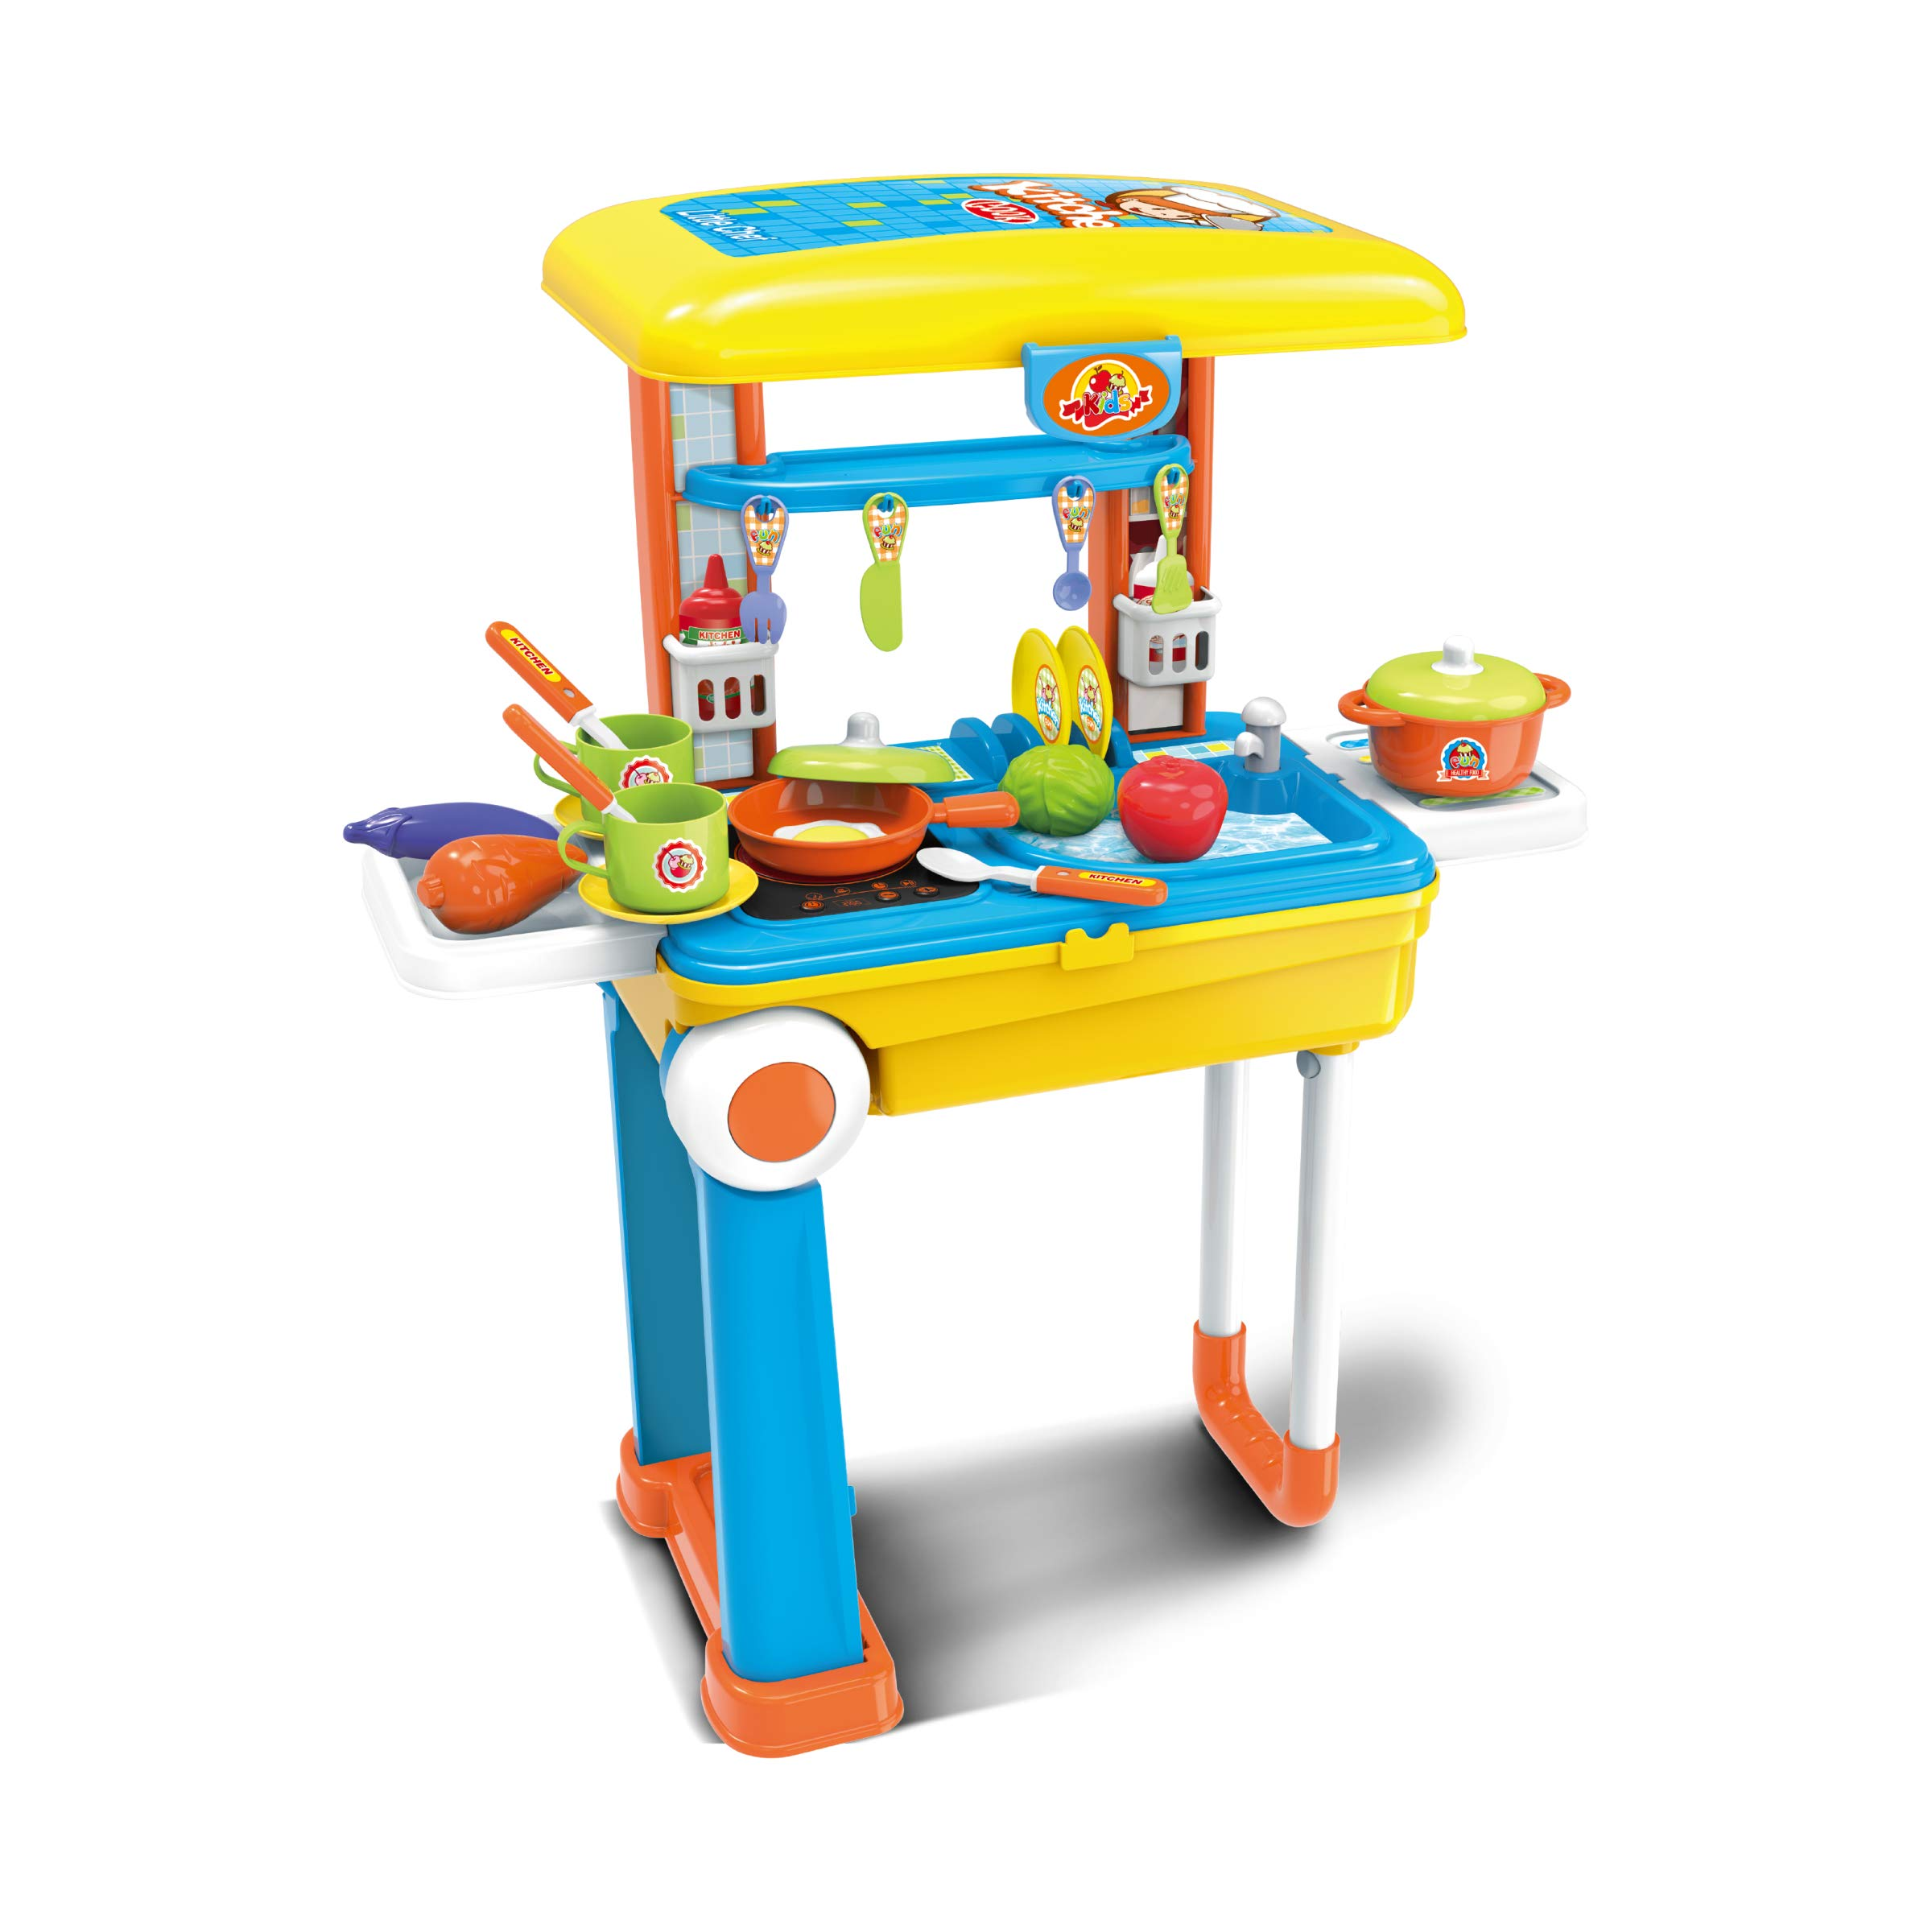 Toy Chef 2-in-1 Travel Suitcase Kitchen Set for Children | Includes Toy Pots, Pans, Dishes, Utensils & Foods ABS Plastic Pretend Play Kit for Boys & Girls (Blue/Yellow)